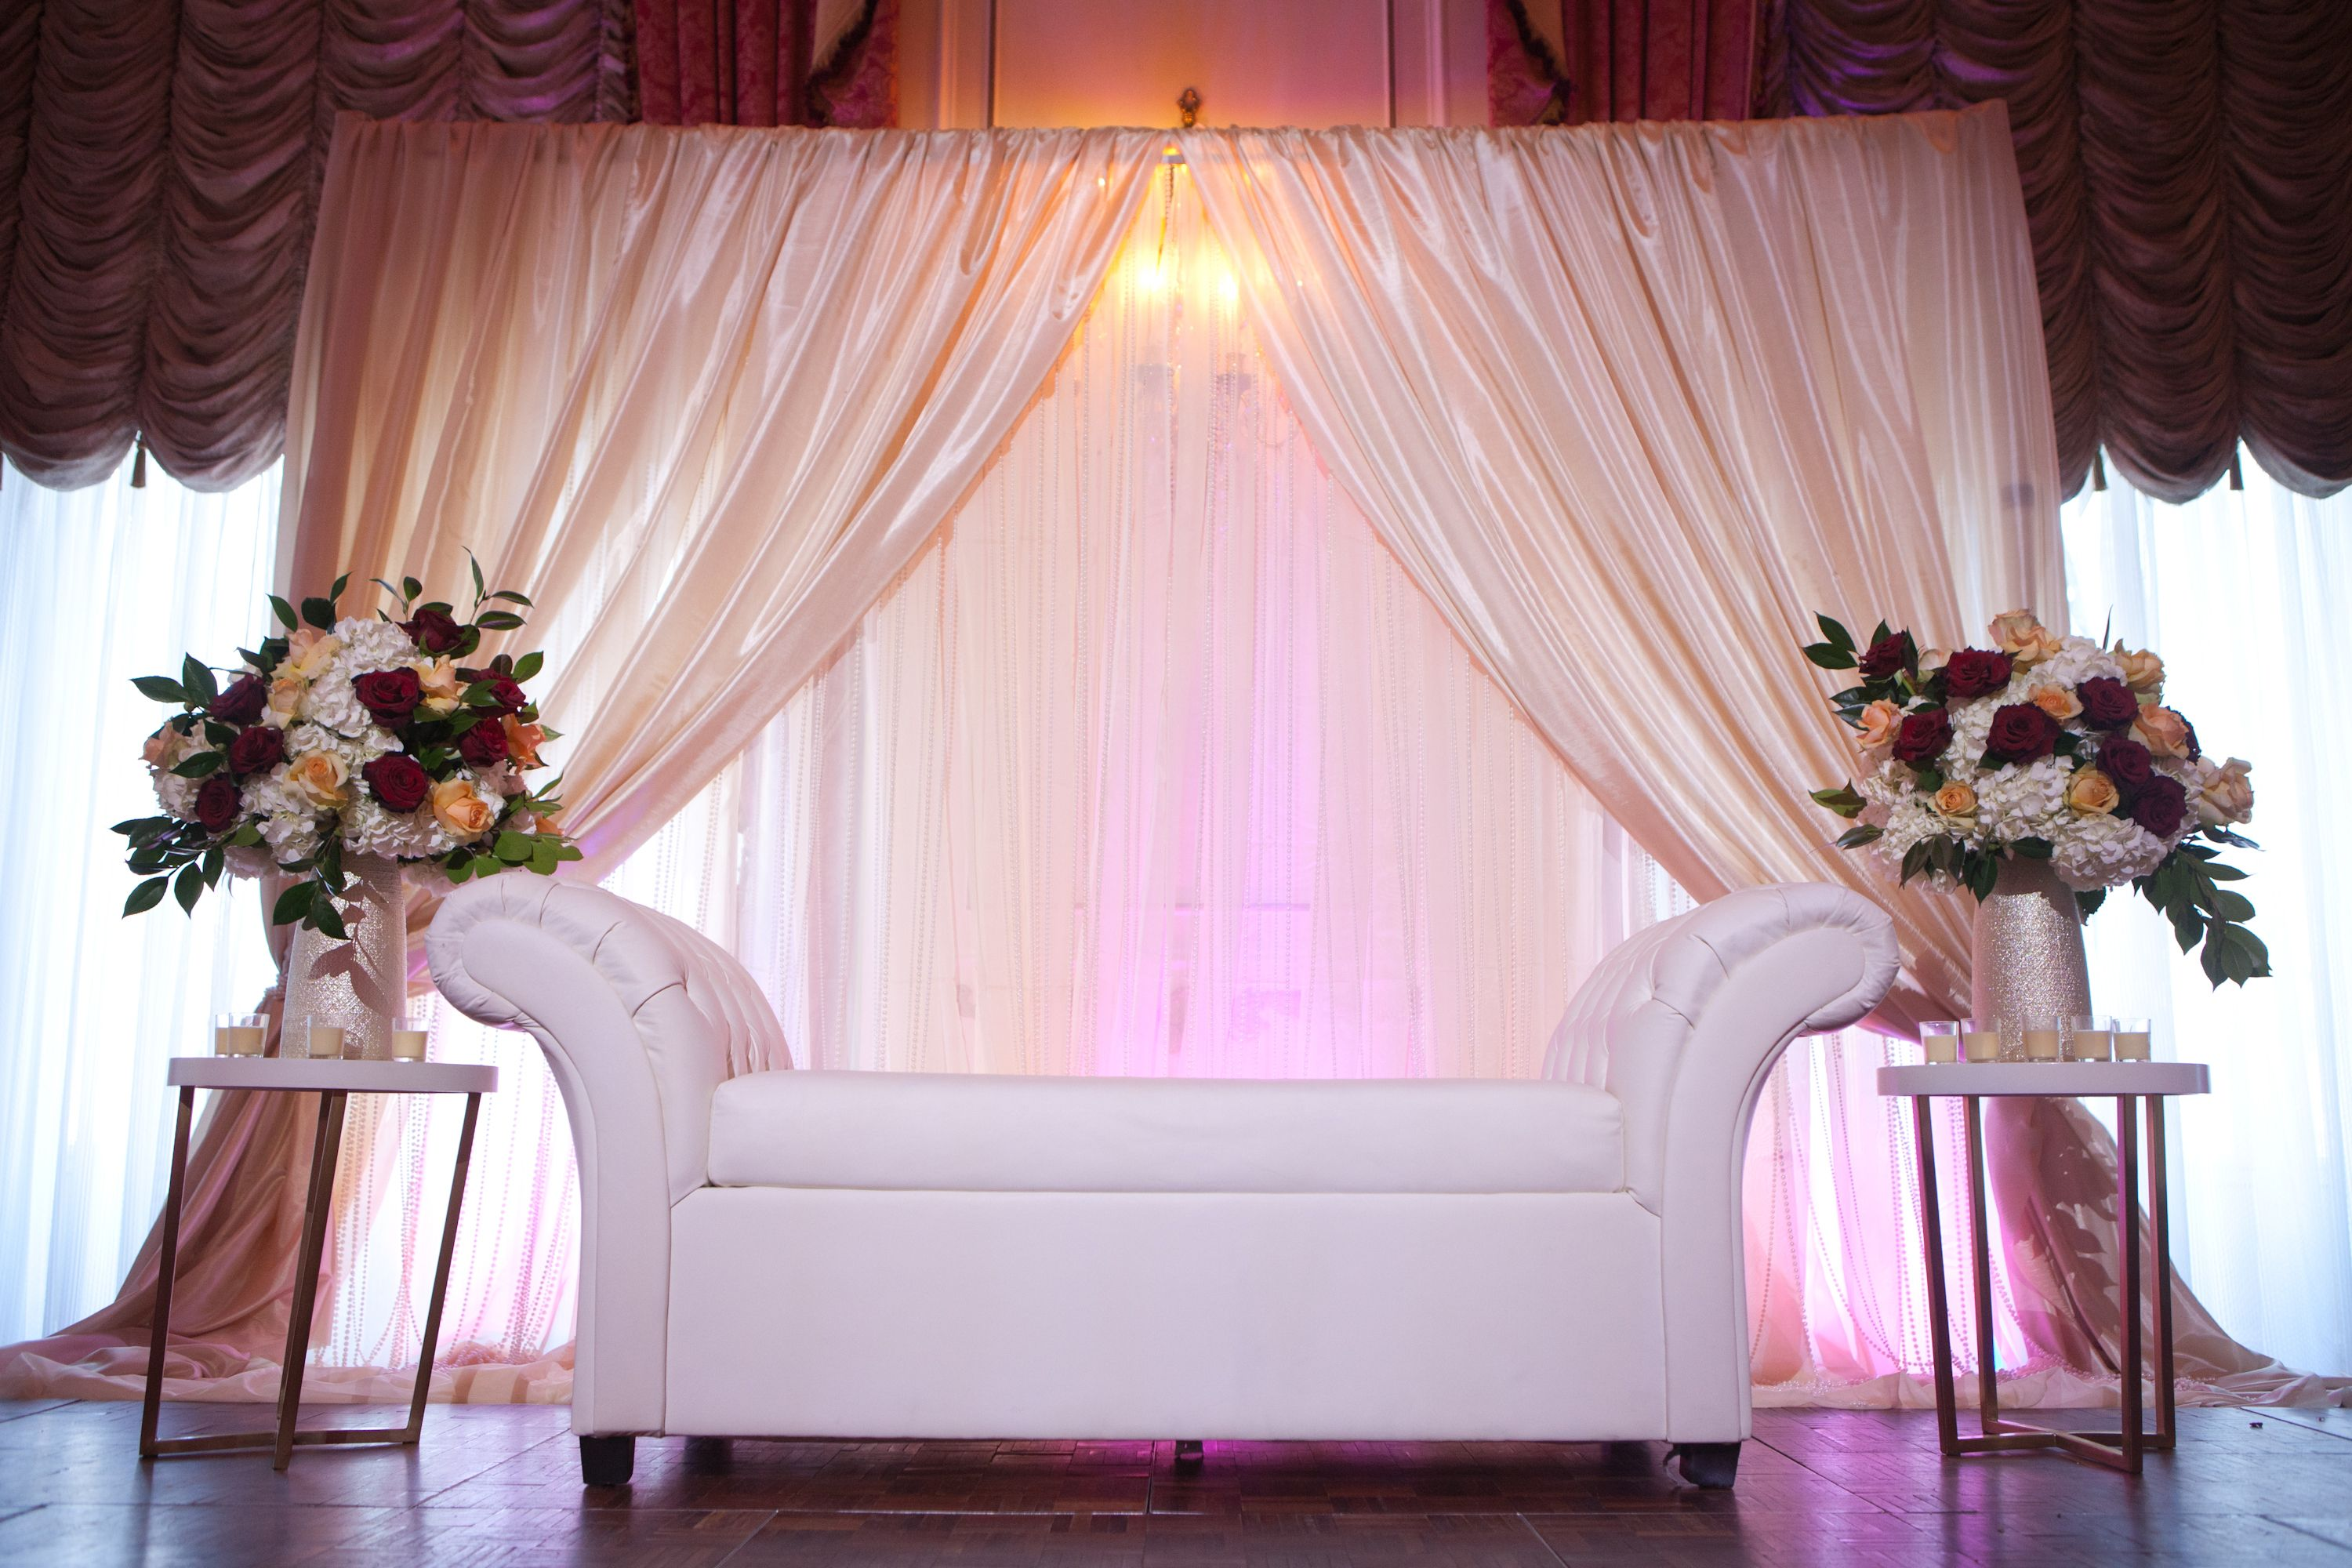 Uncategorized Wedding Reception Backdrop Decorations taj boston muslim wedding reception backdrop ivory inspiration indian muslim